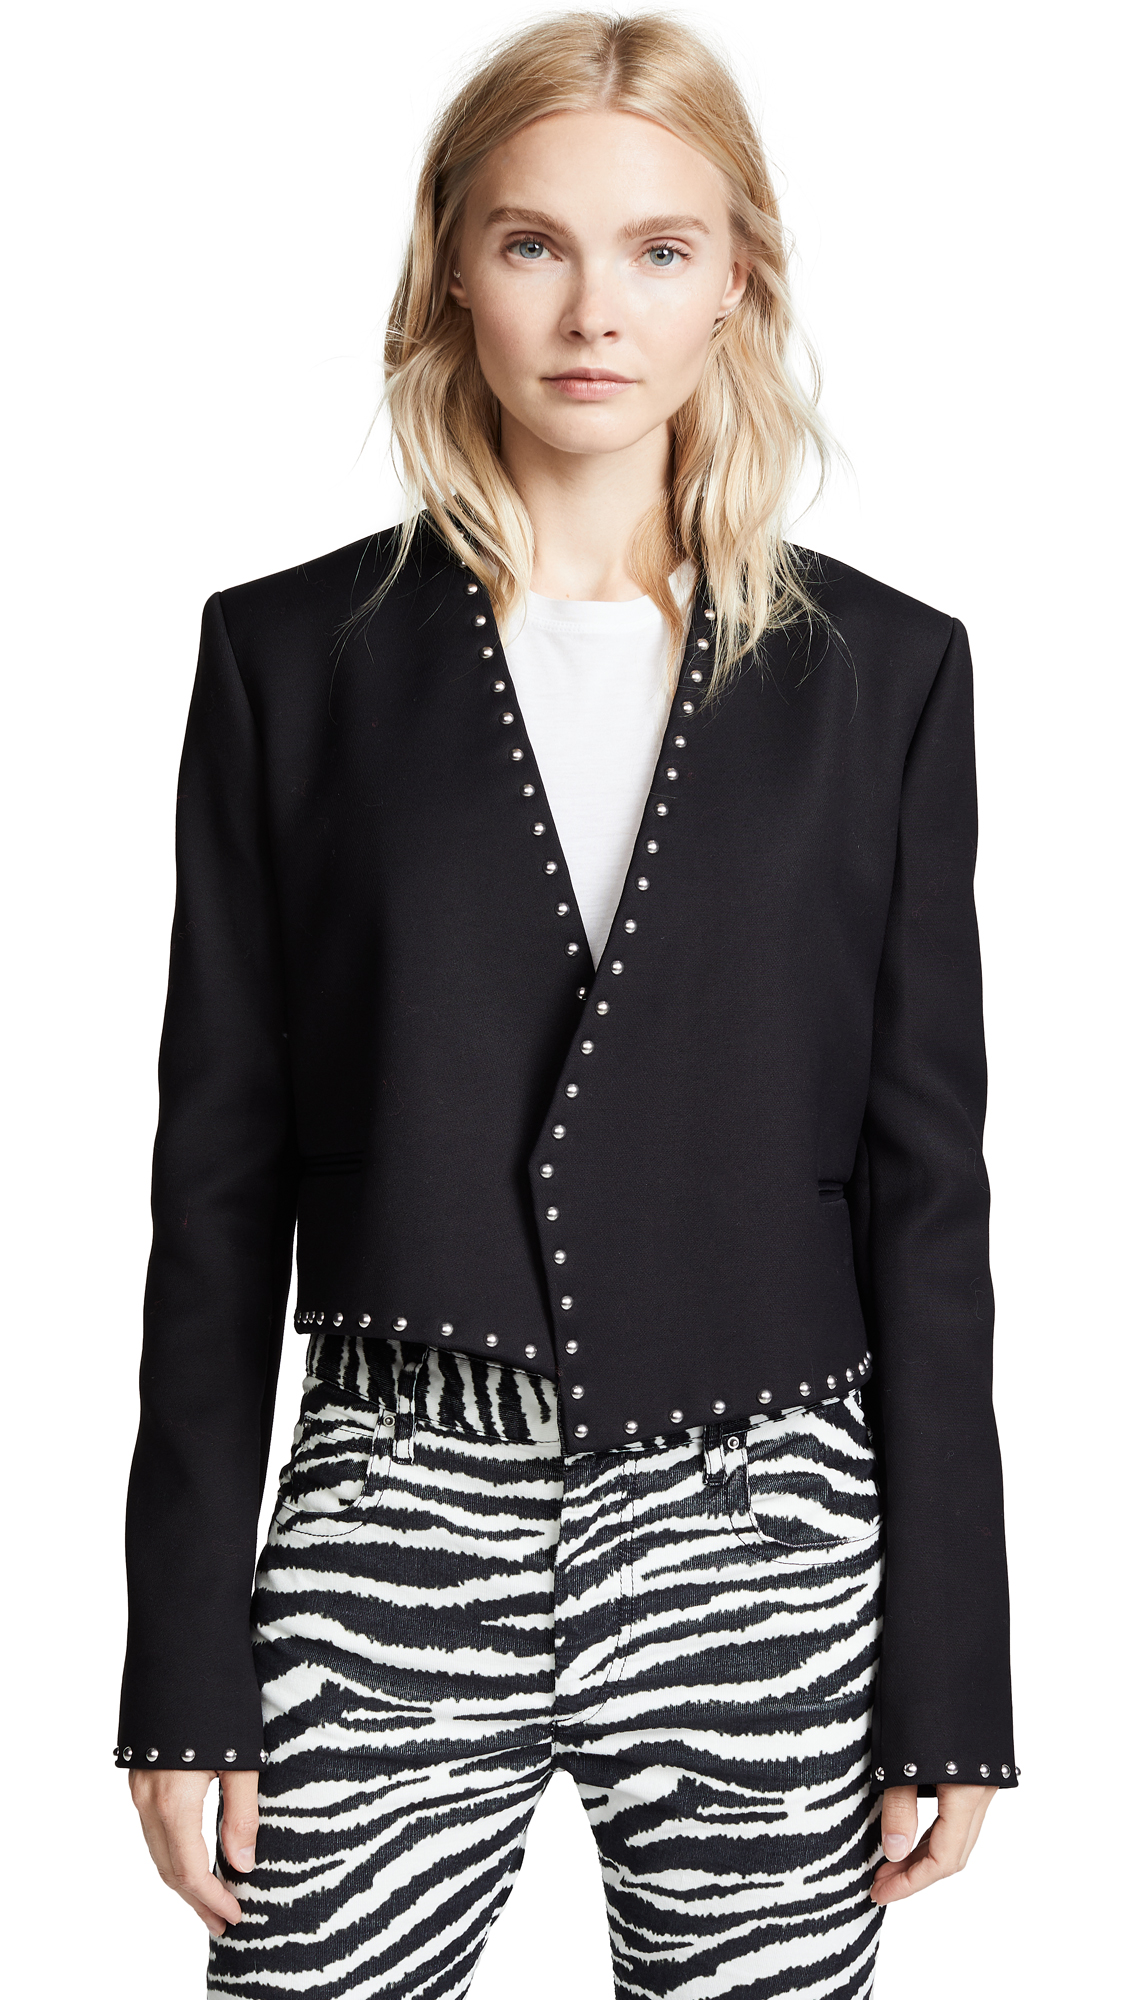 Helmut Lang Studded Suit Jacket - Black